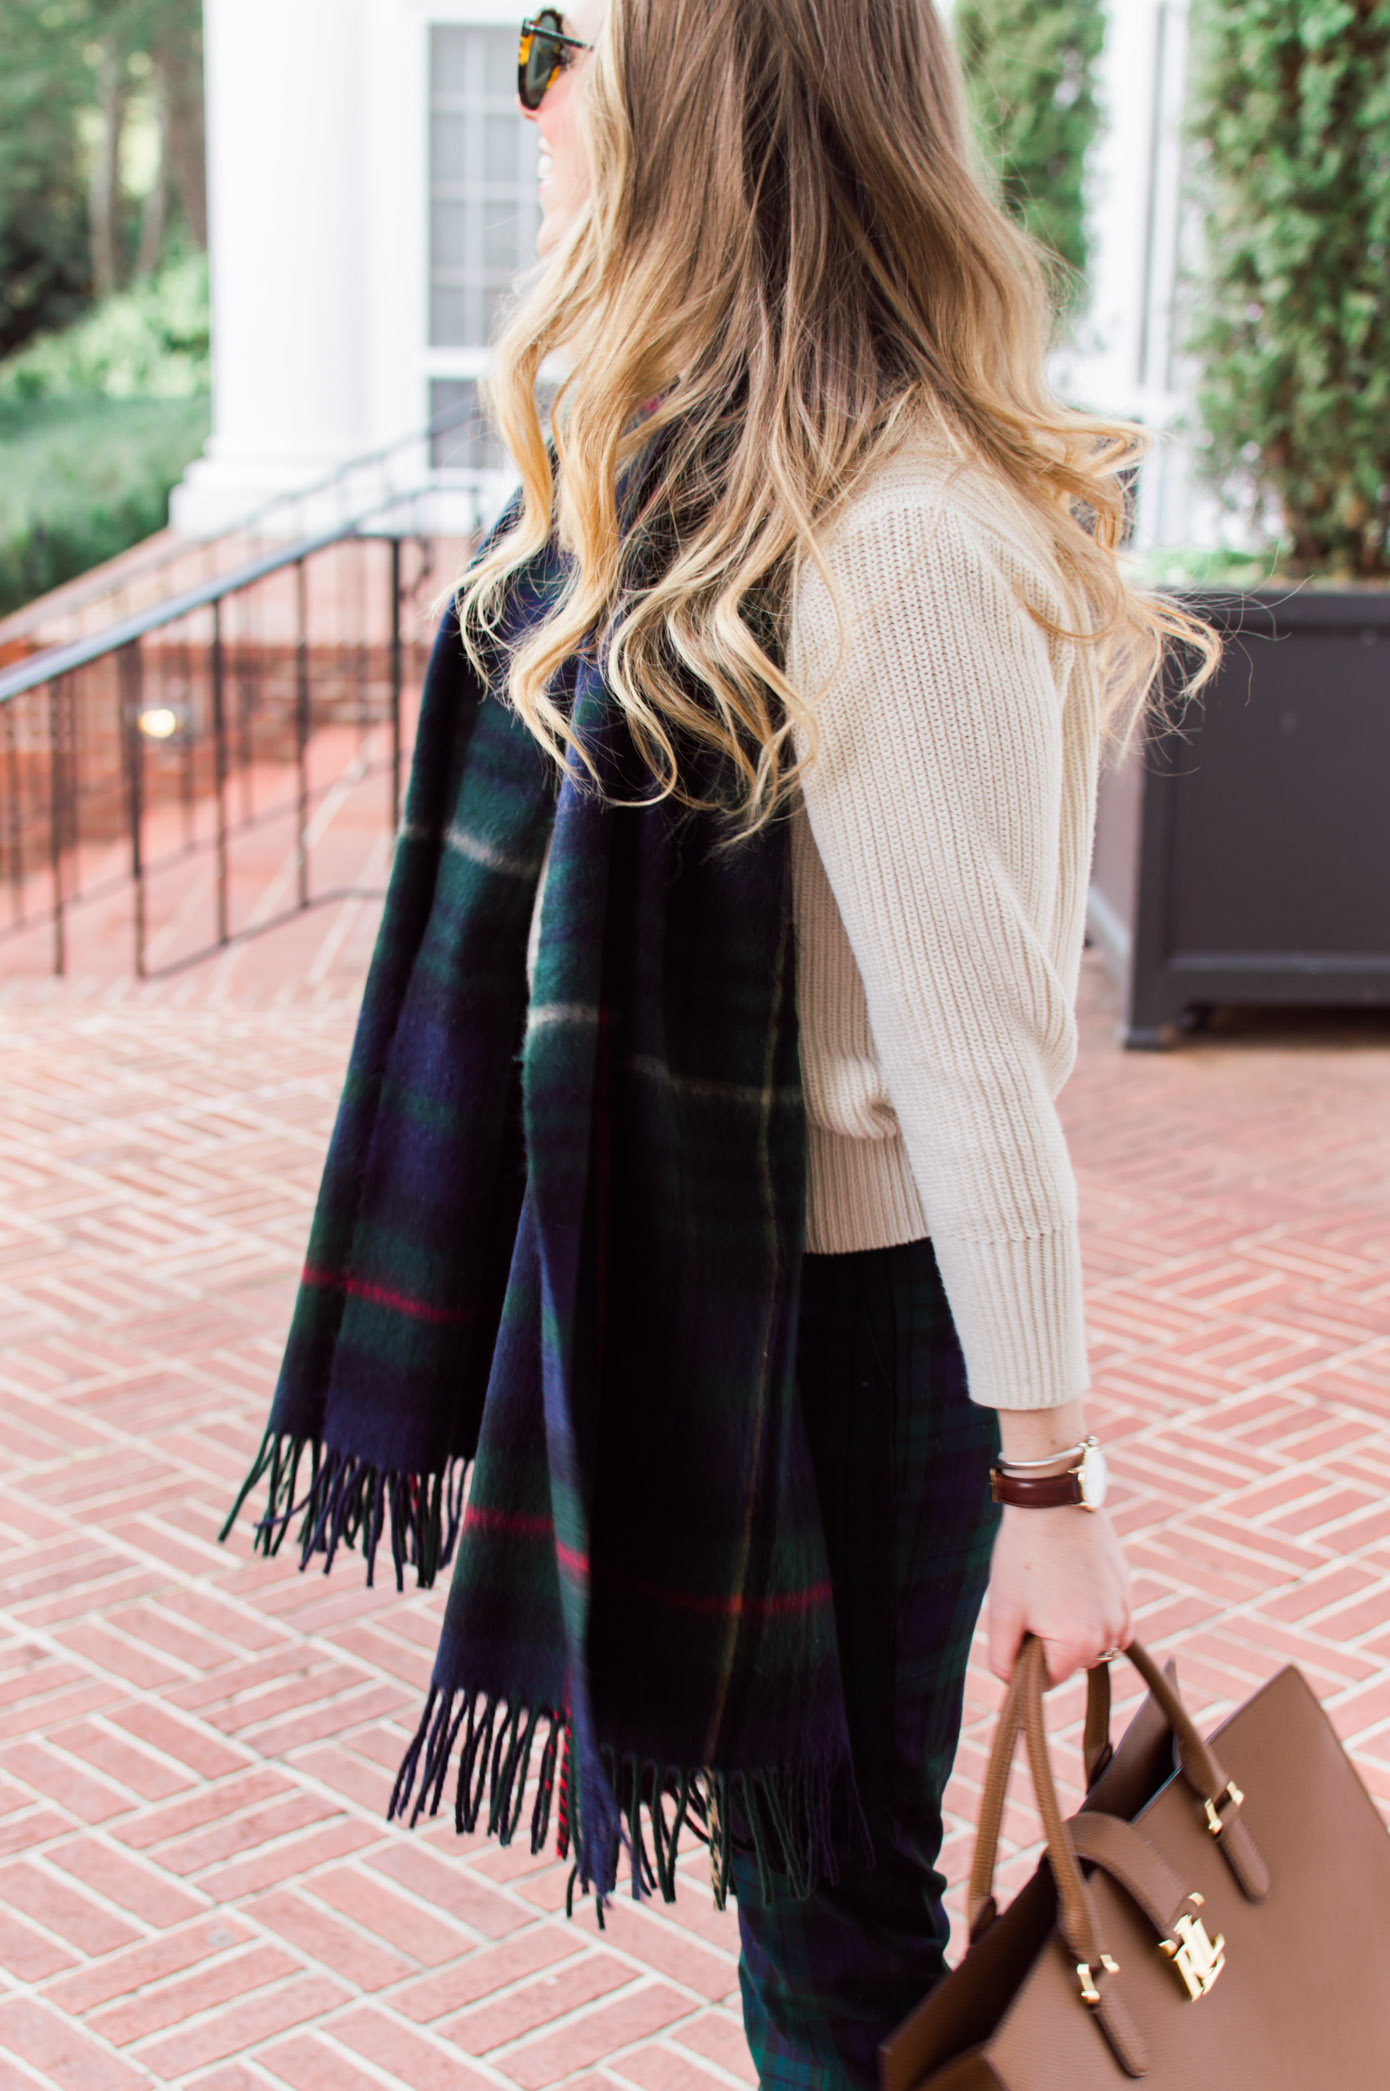 Preppy Plaid Work Outfit Idea | 10 Ways to Mix Patterns Like a Fashion Blogger | Louella Reese Life & Style Blog